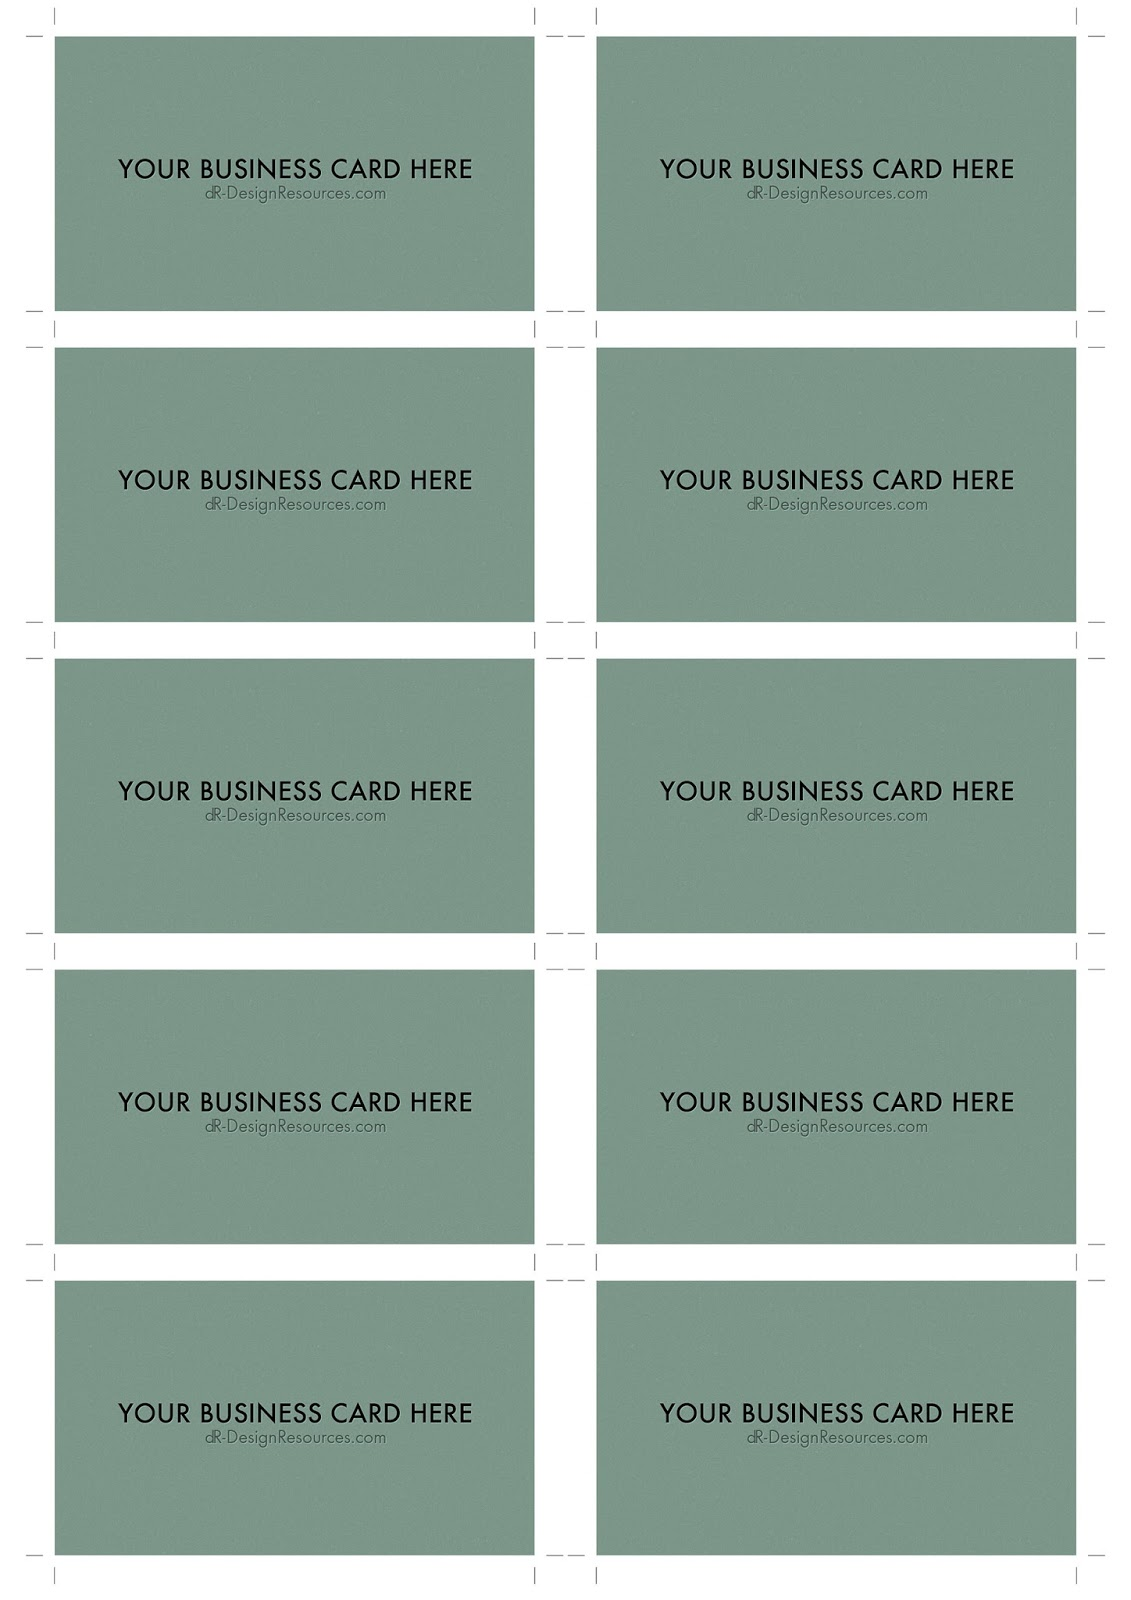 10 business card template gidiyedformapolitica 10 business card template wajeb